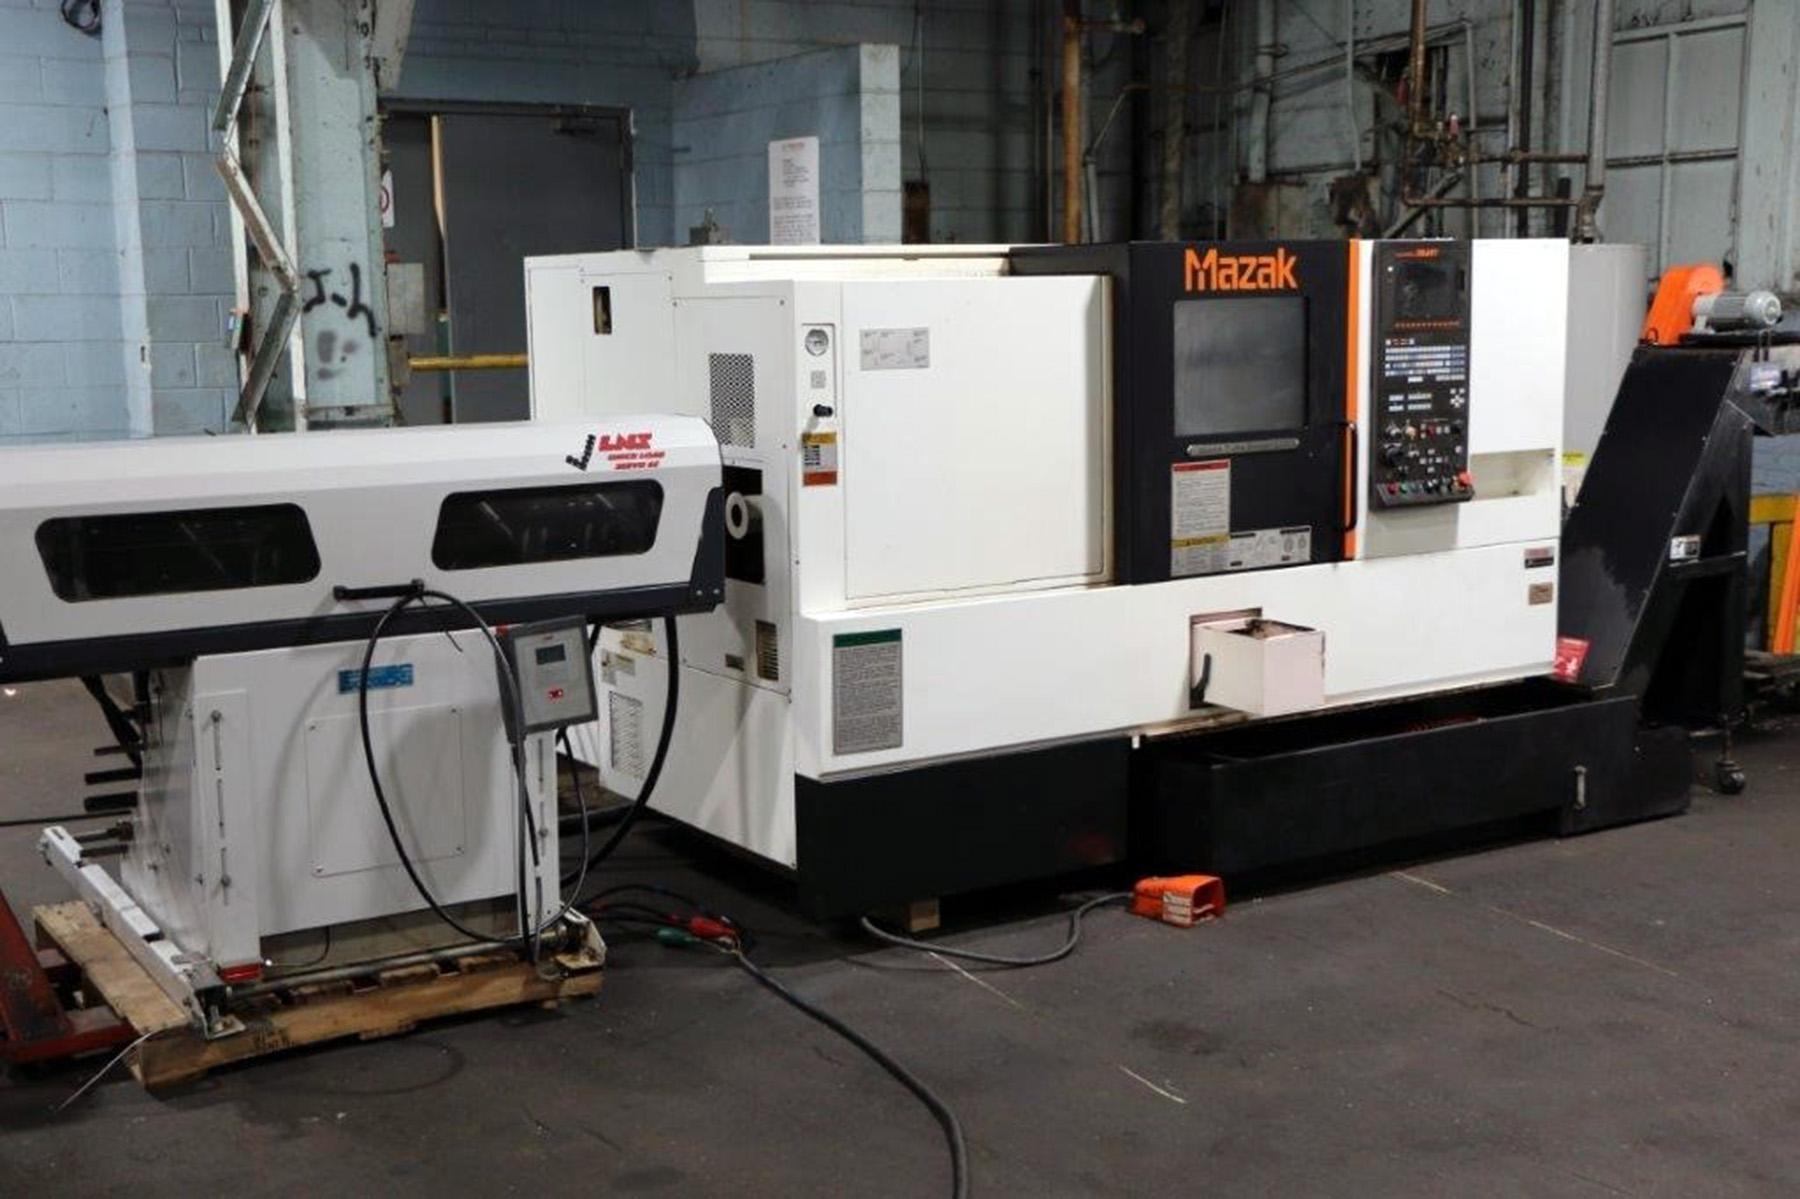 USED, MAZAK QUICK TURN SMART 200 CNC TURNING CENTER WITH LNS BAR FEEDER